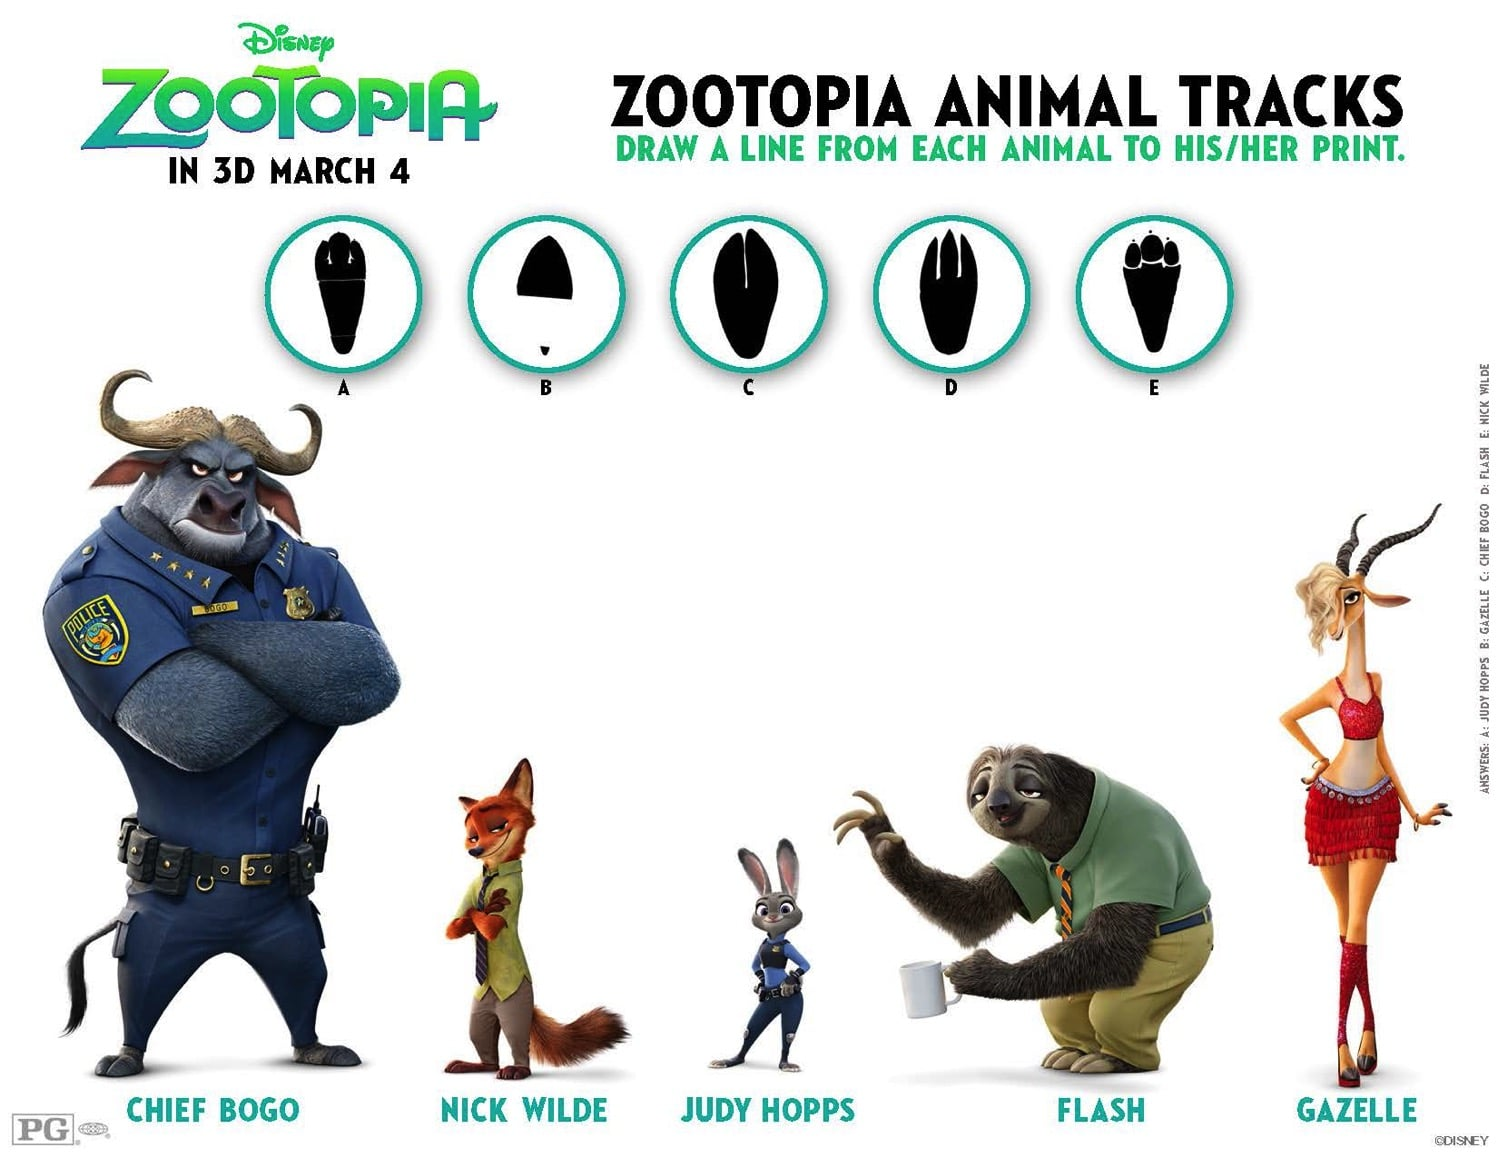 http://www.reallyareyouserious.com/wp-content/uploads/2016/03/Zootopia-tracks-match-up.pdf